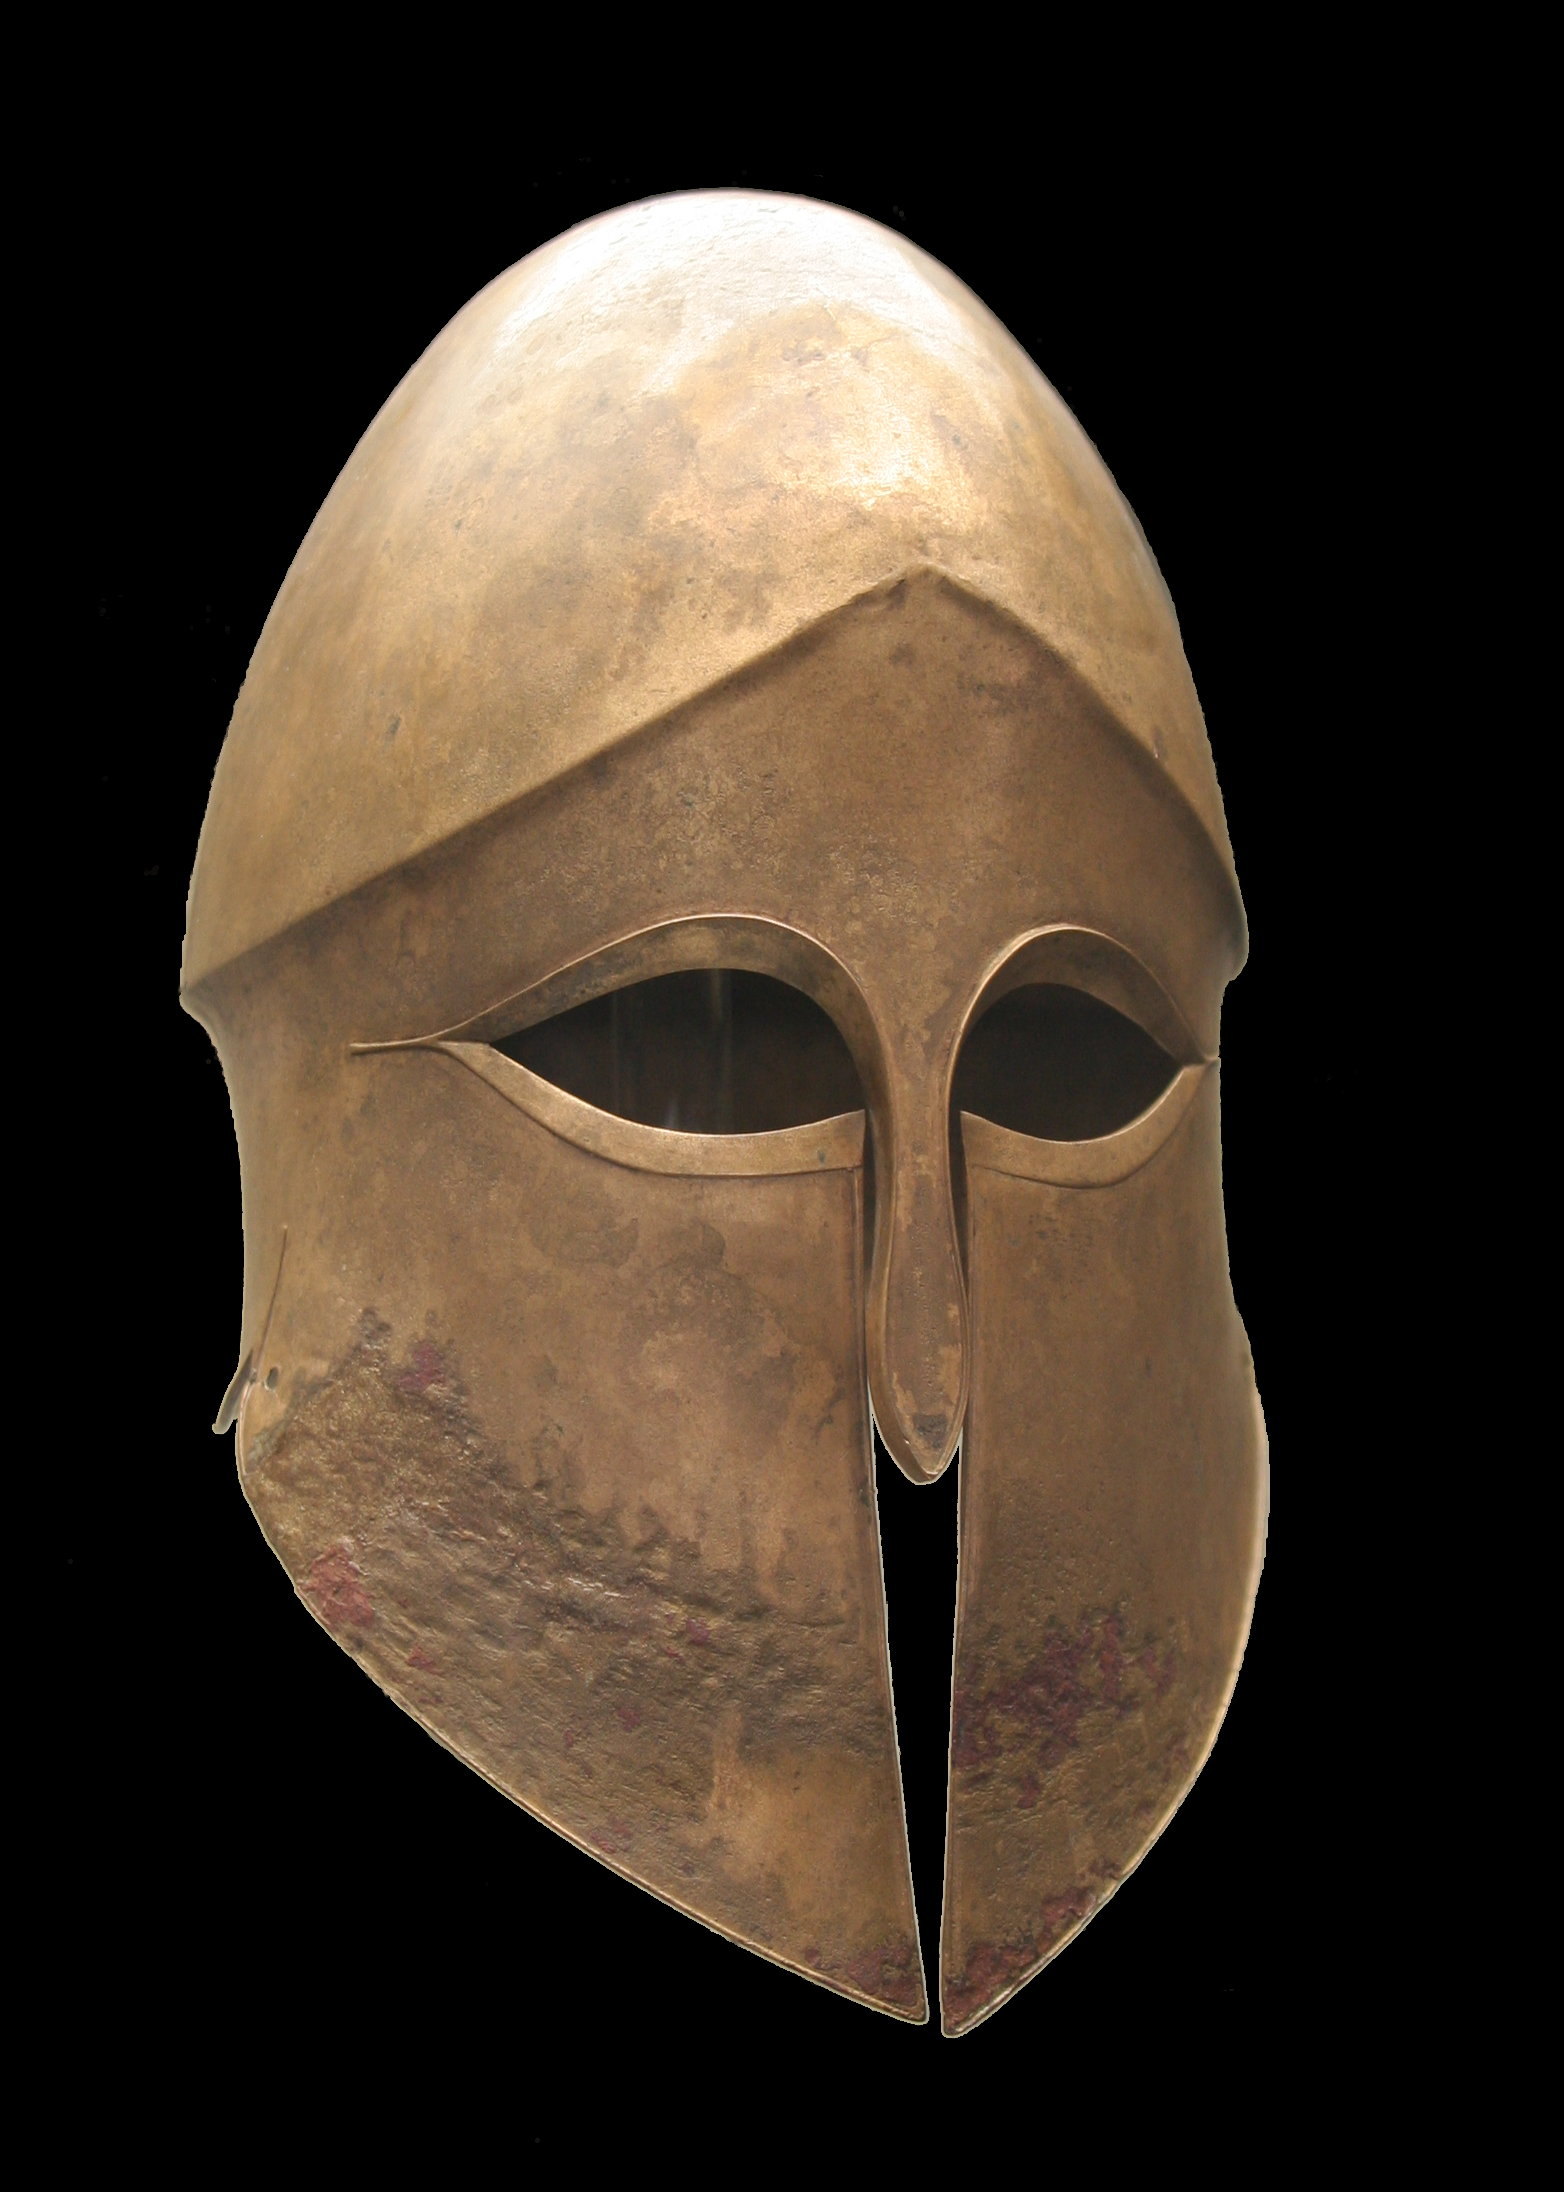 corinthian helmet wikipedia. Black Bedroom Furniture Sets. Home Design Ideas